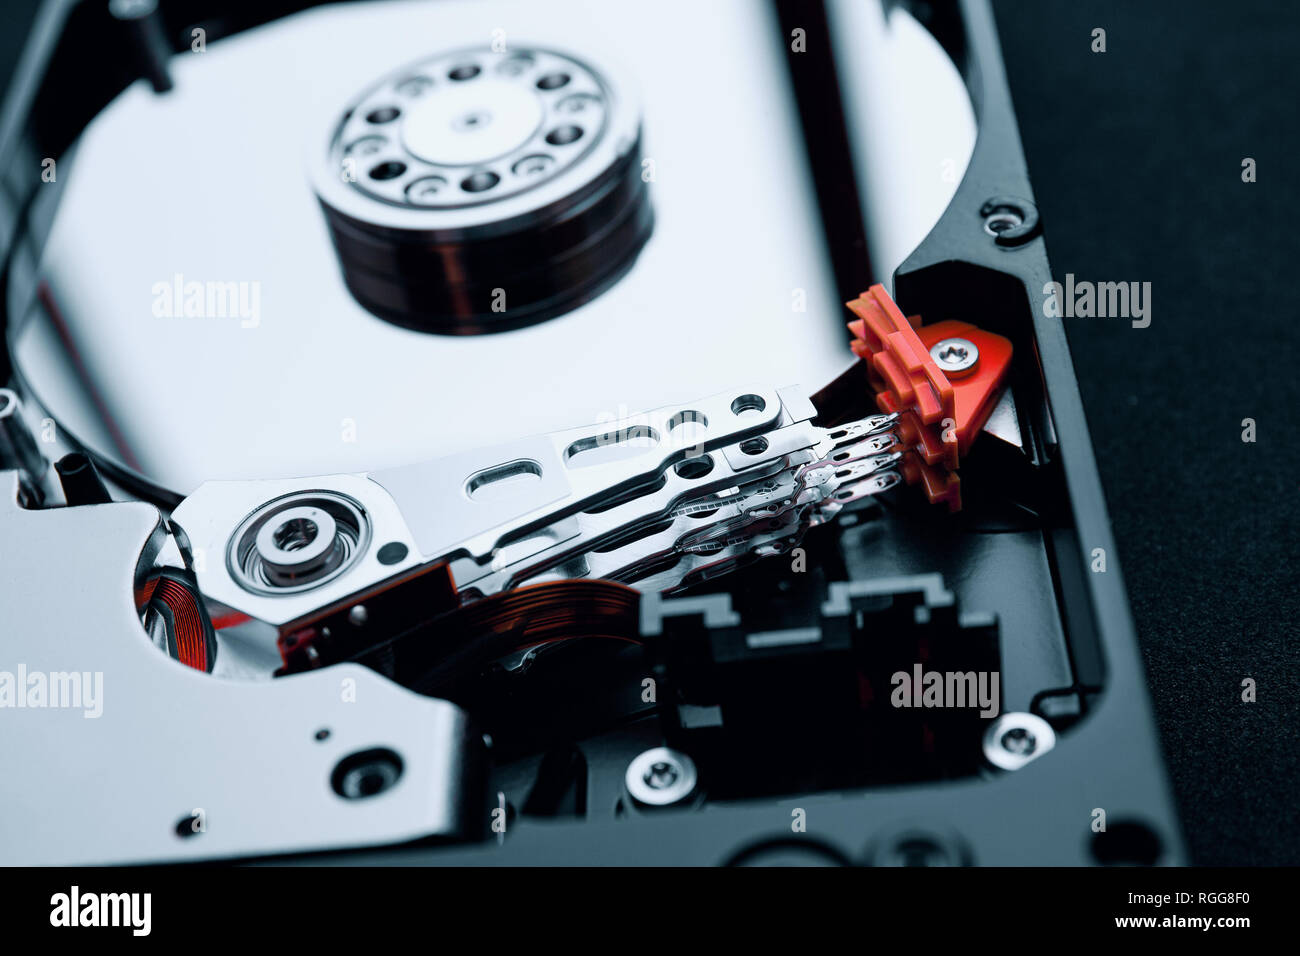 Closeup inside the assembly of hard disk drive actuator arm with read/write head and multi-layer magnetic platters discs. - Stock Image